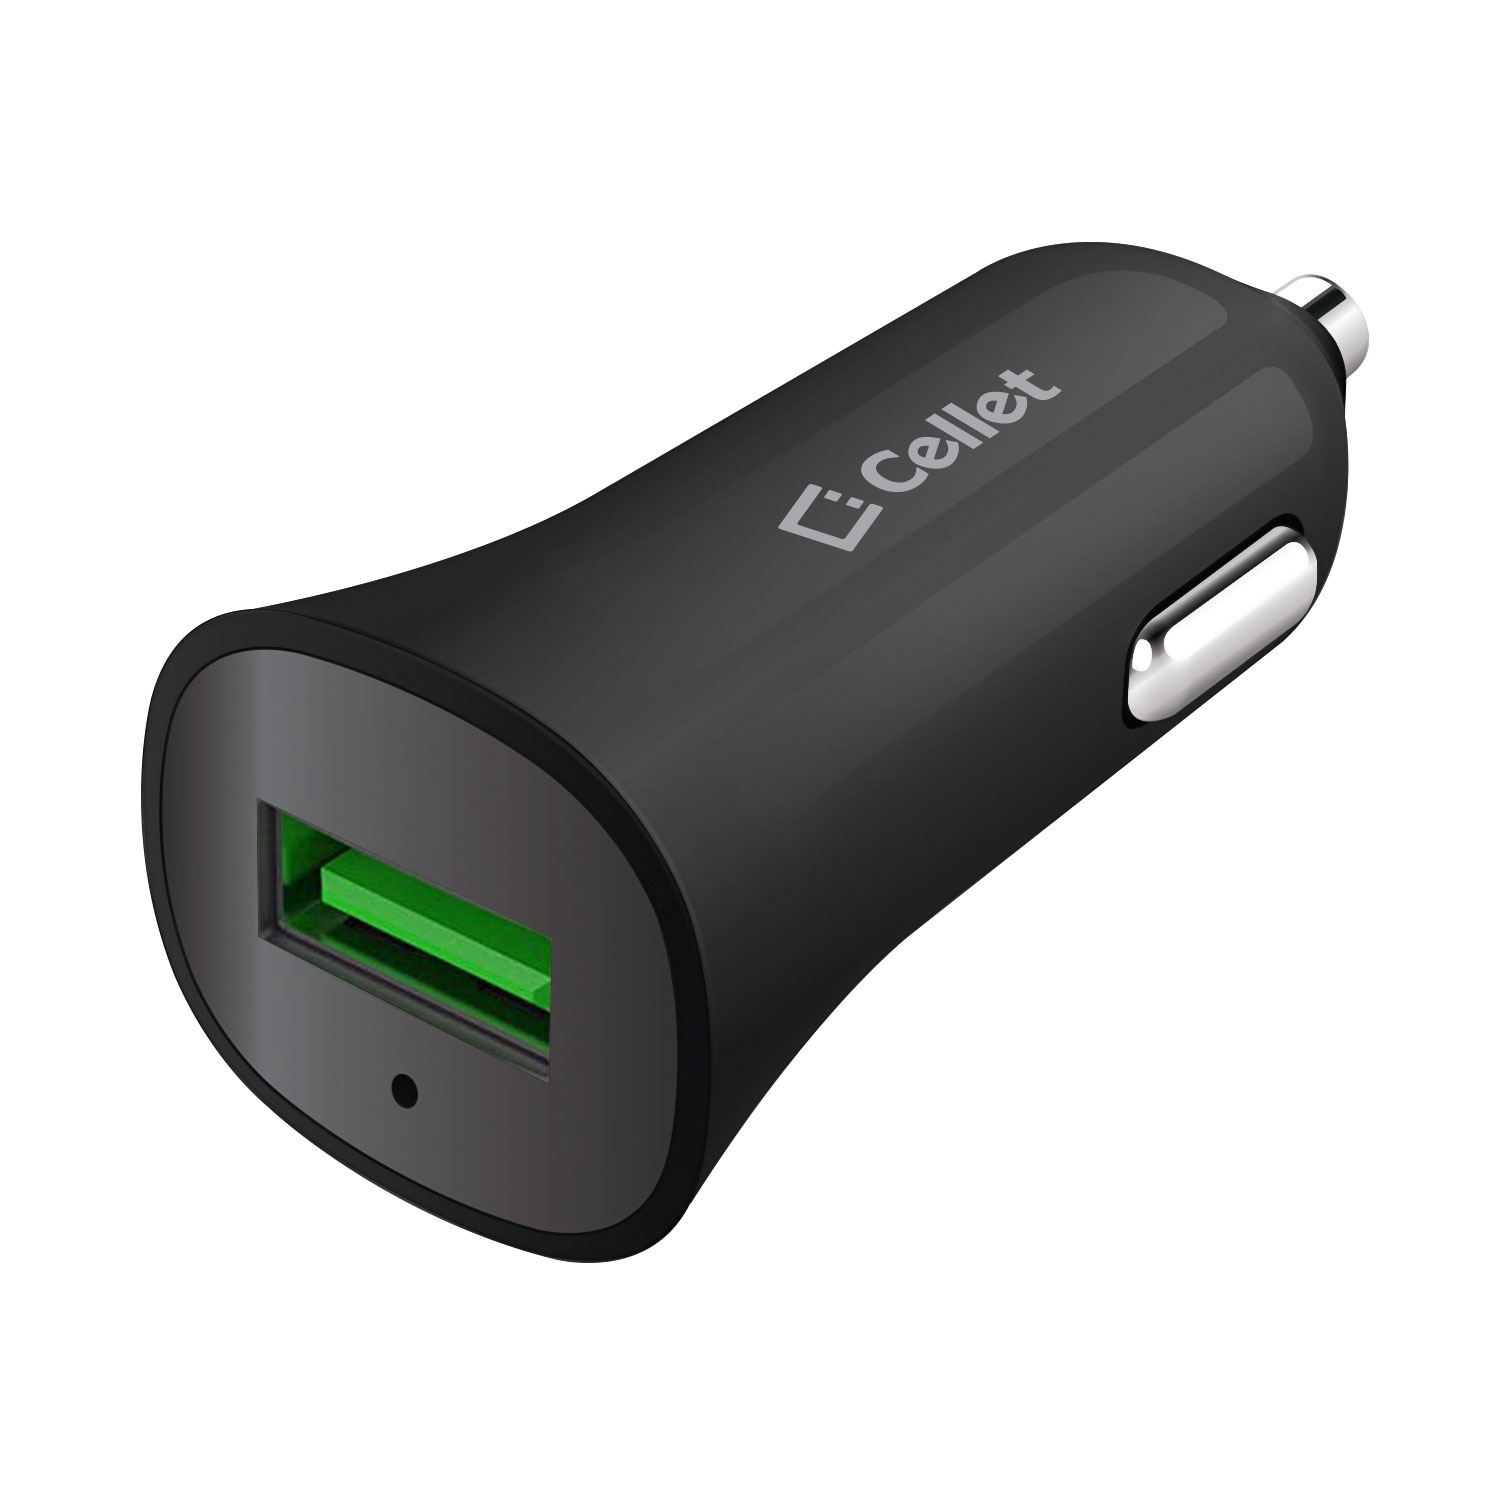 Moto Theory Car Charger Quick Charge 3.0 Black 3.3ft